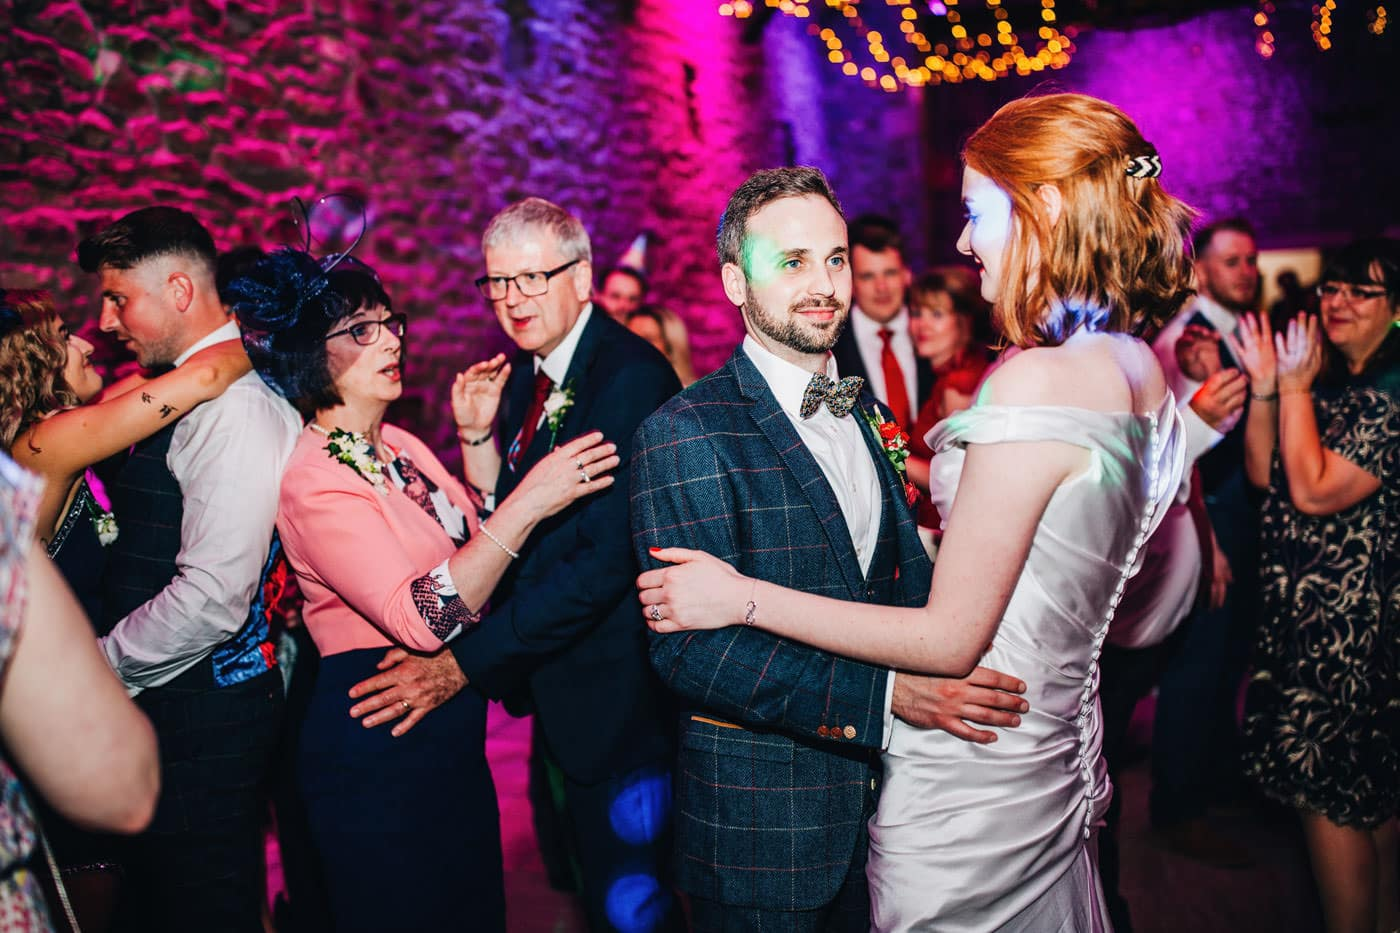 Browsholme and the Tithe Barn - couple dancing